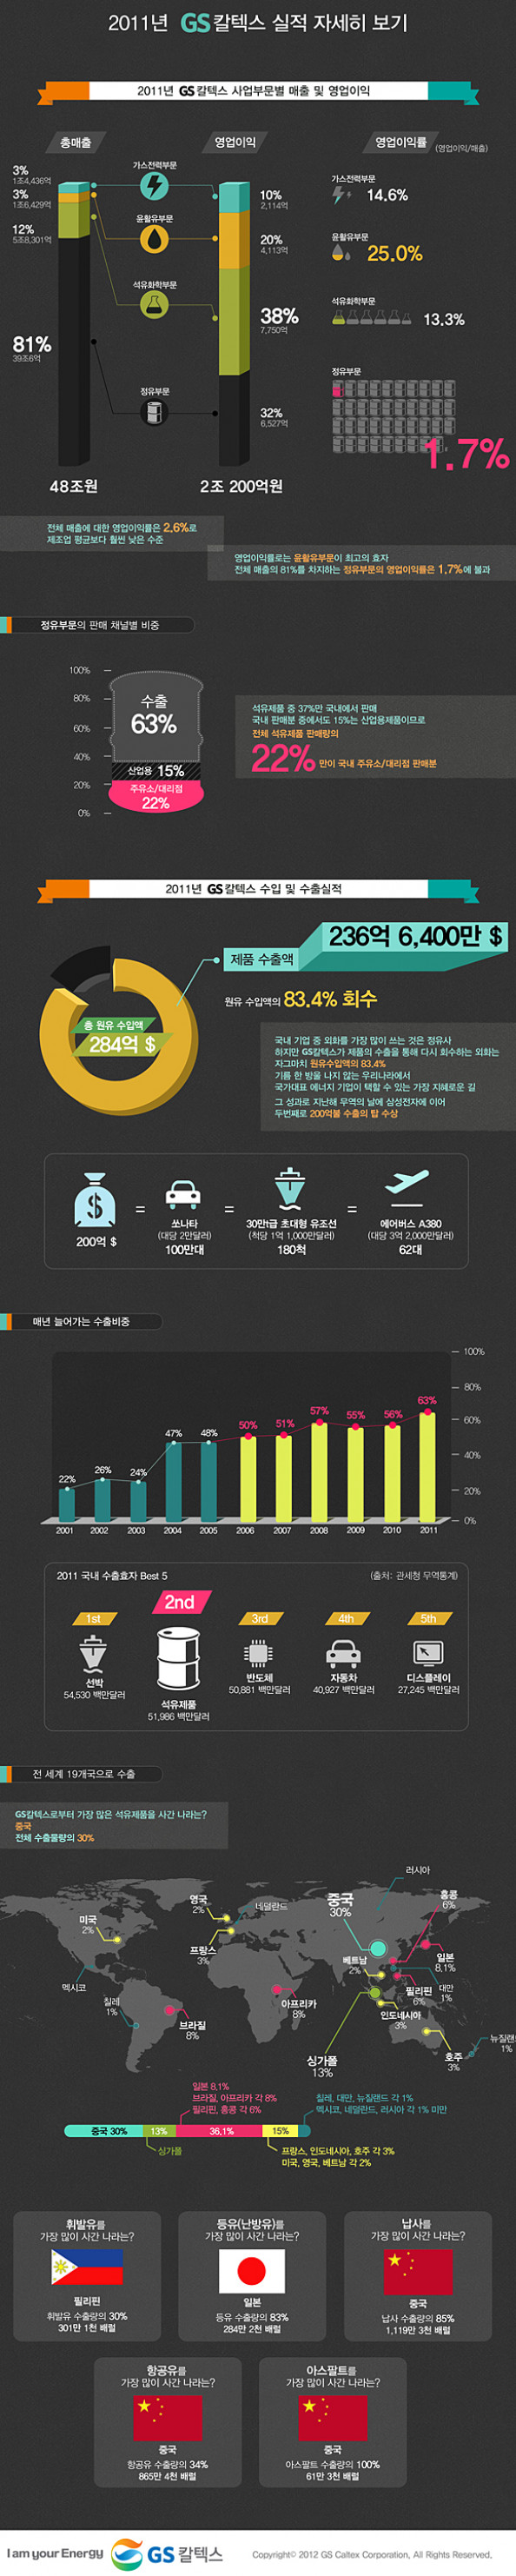 2011 Financial Performance of GS Caltex Infographic